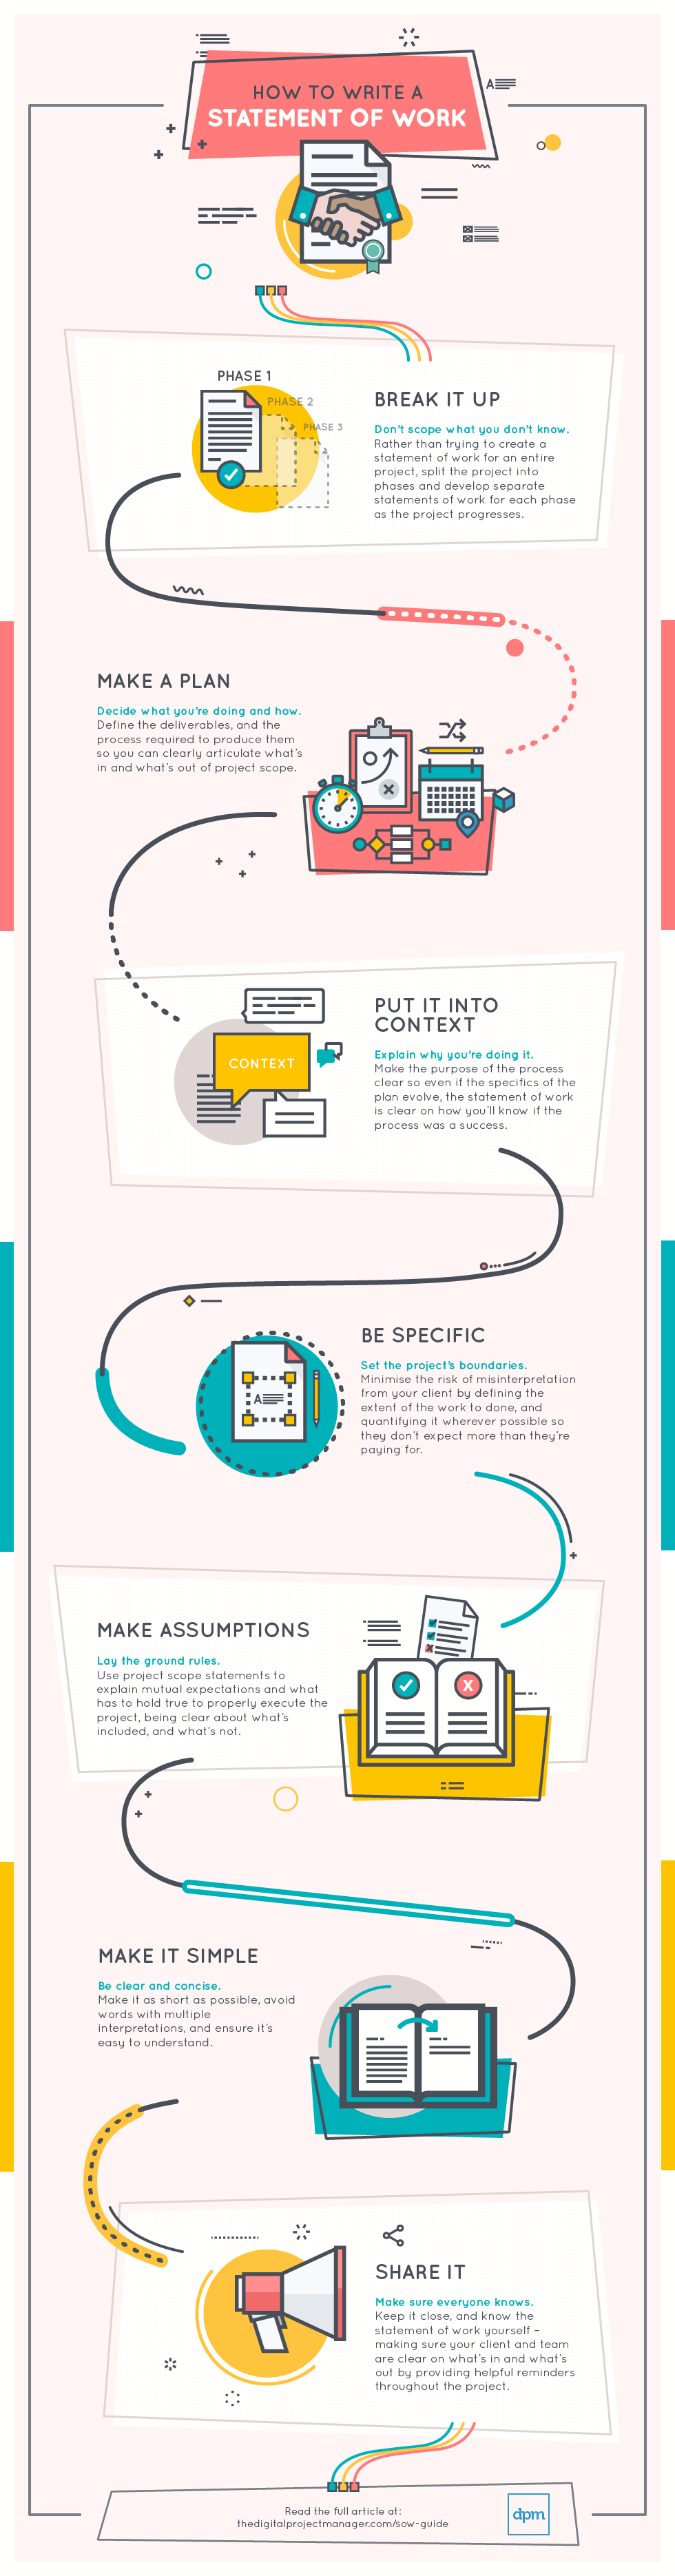 how to write a statement of work - infographic